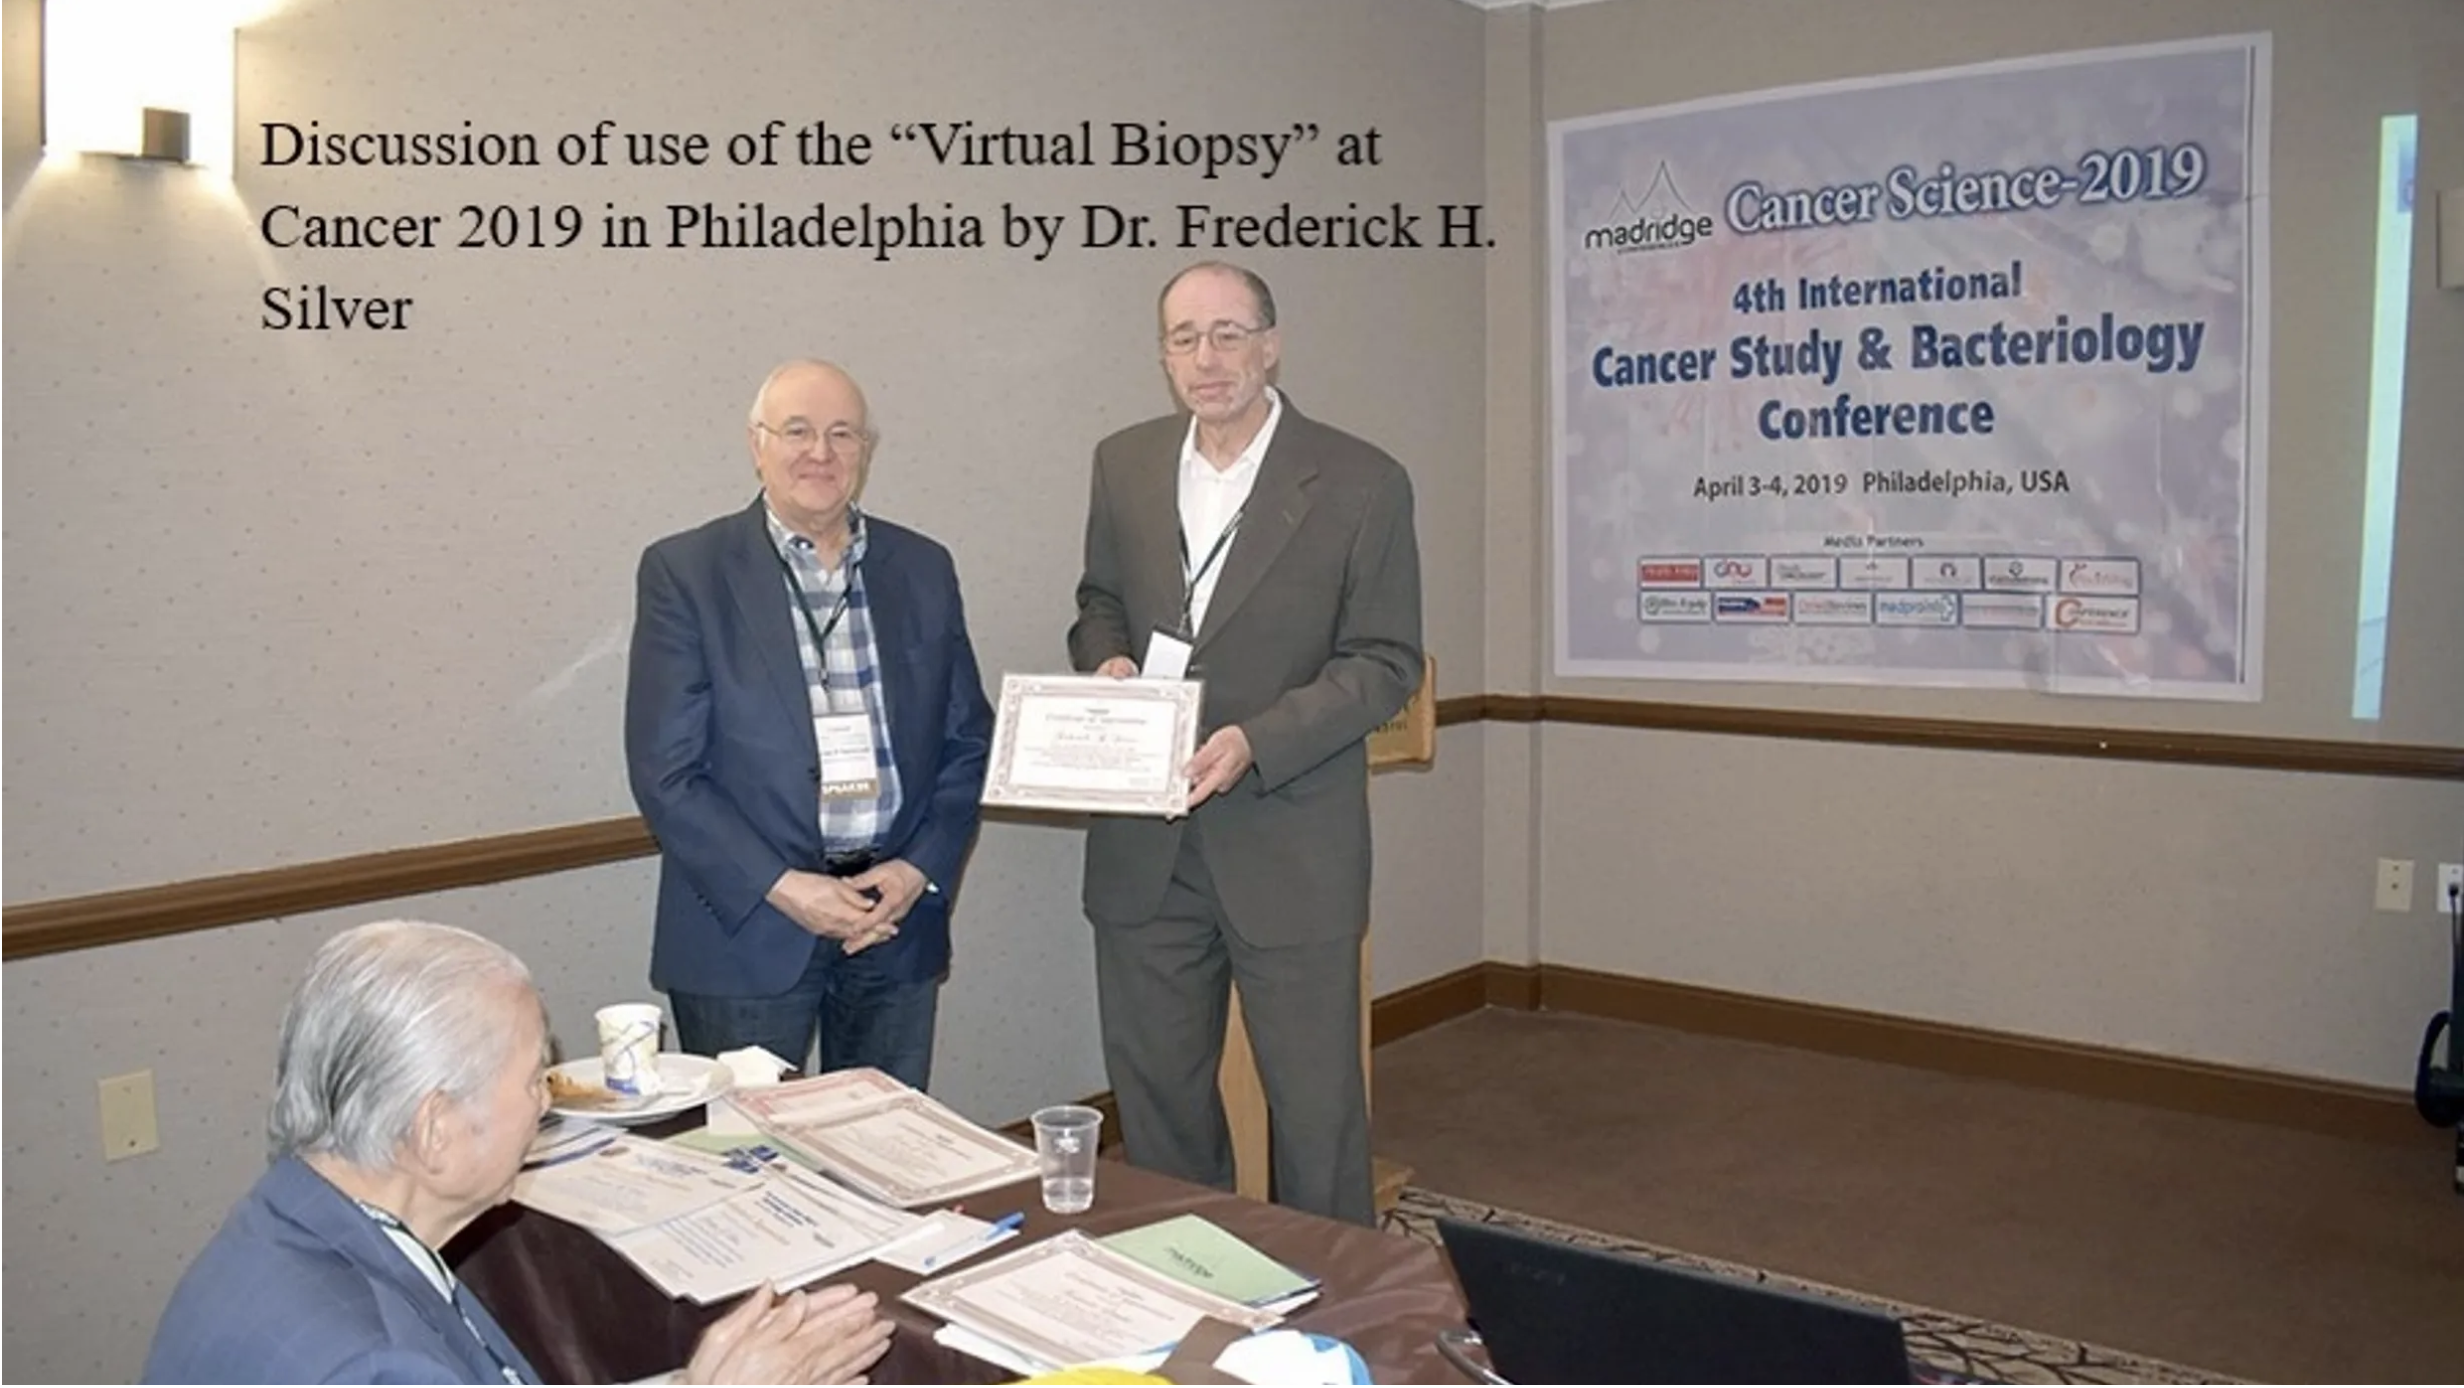 """DISCUSSION OF THE USE OF """"VIRTUAL BIOPSY"""" AT CANCER 2019!"""